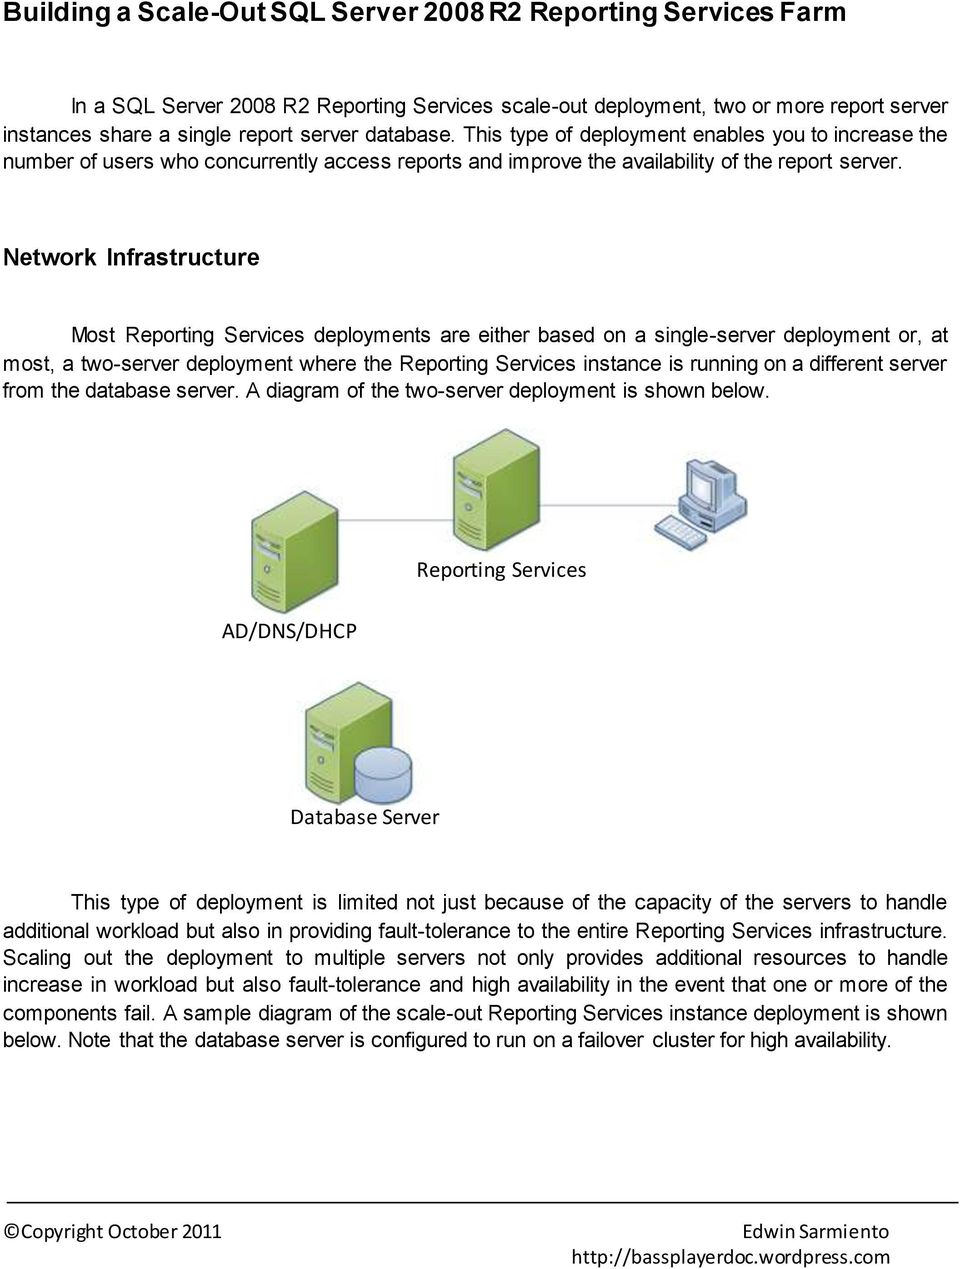 Network Infrastructure Most Reporting Services deployments are either based on a single-server deployment or, at most, a two-server deployment where the Reporting Services instance is running on a